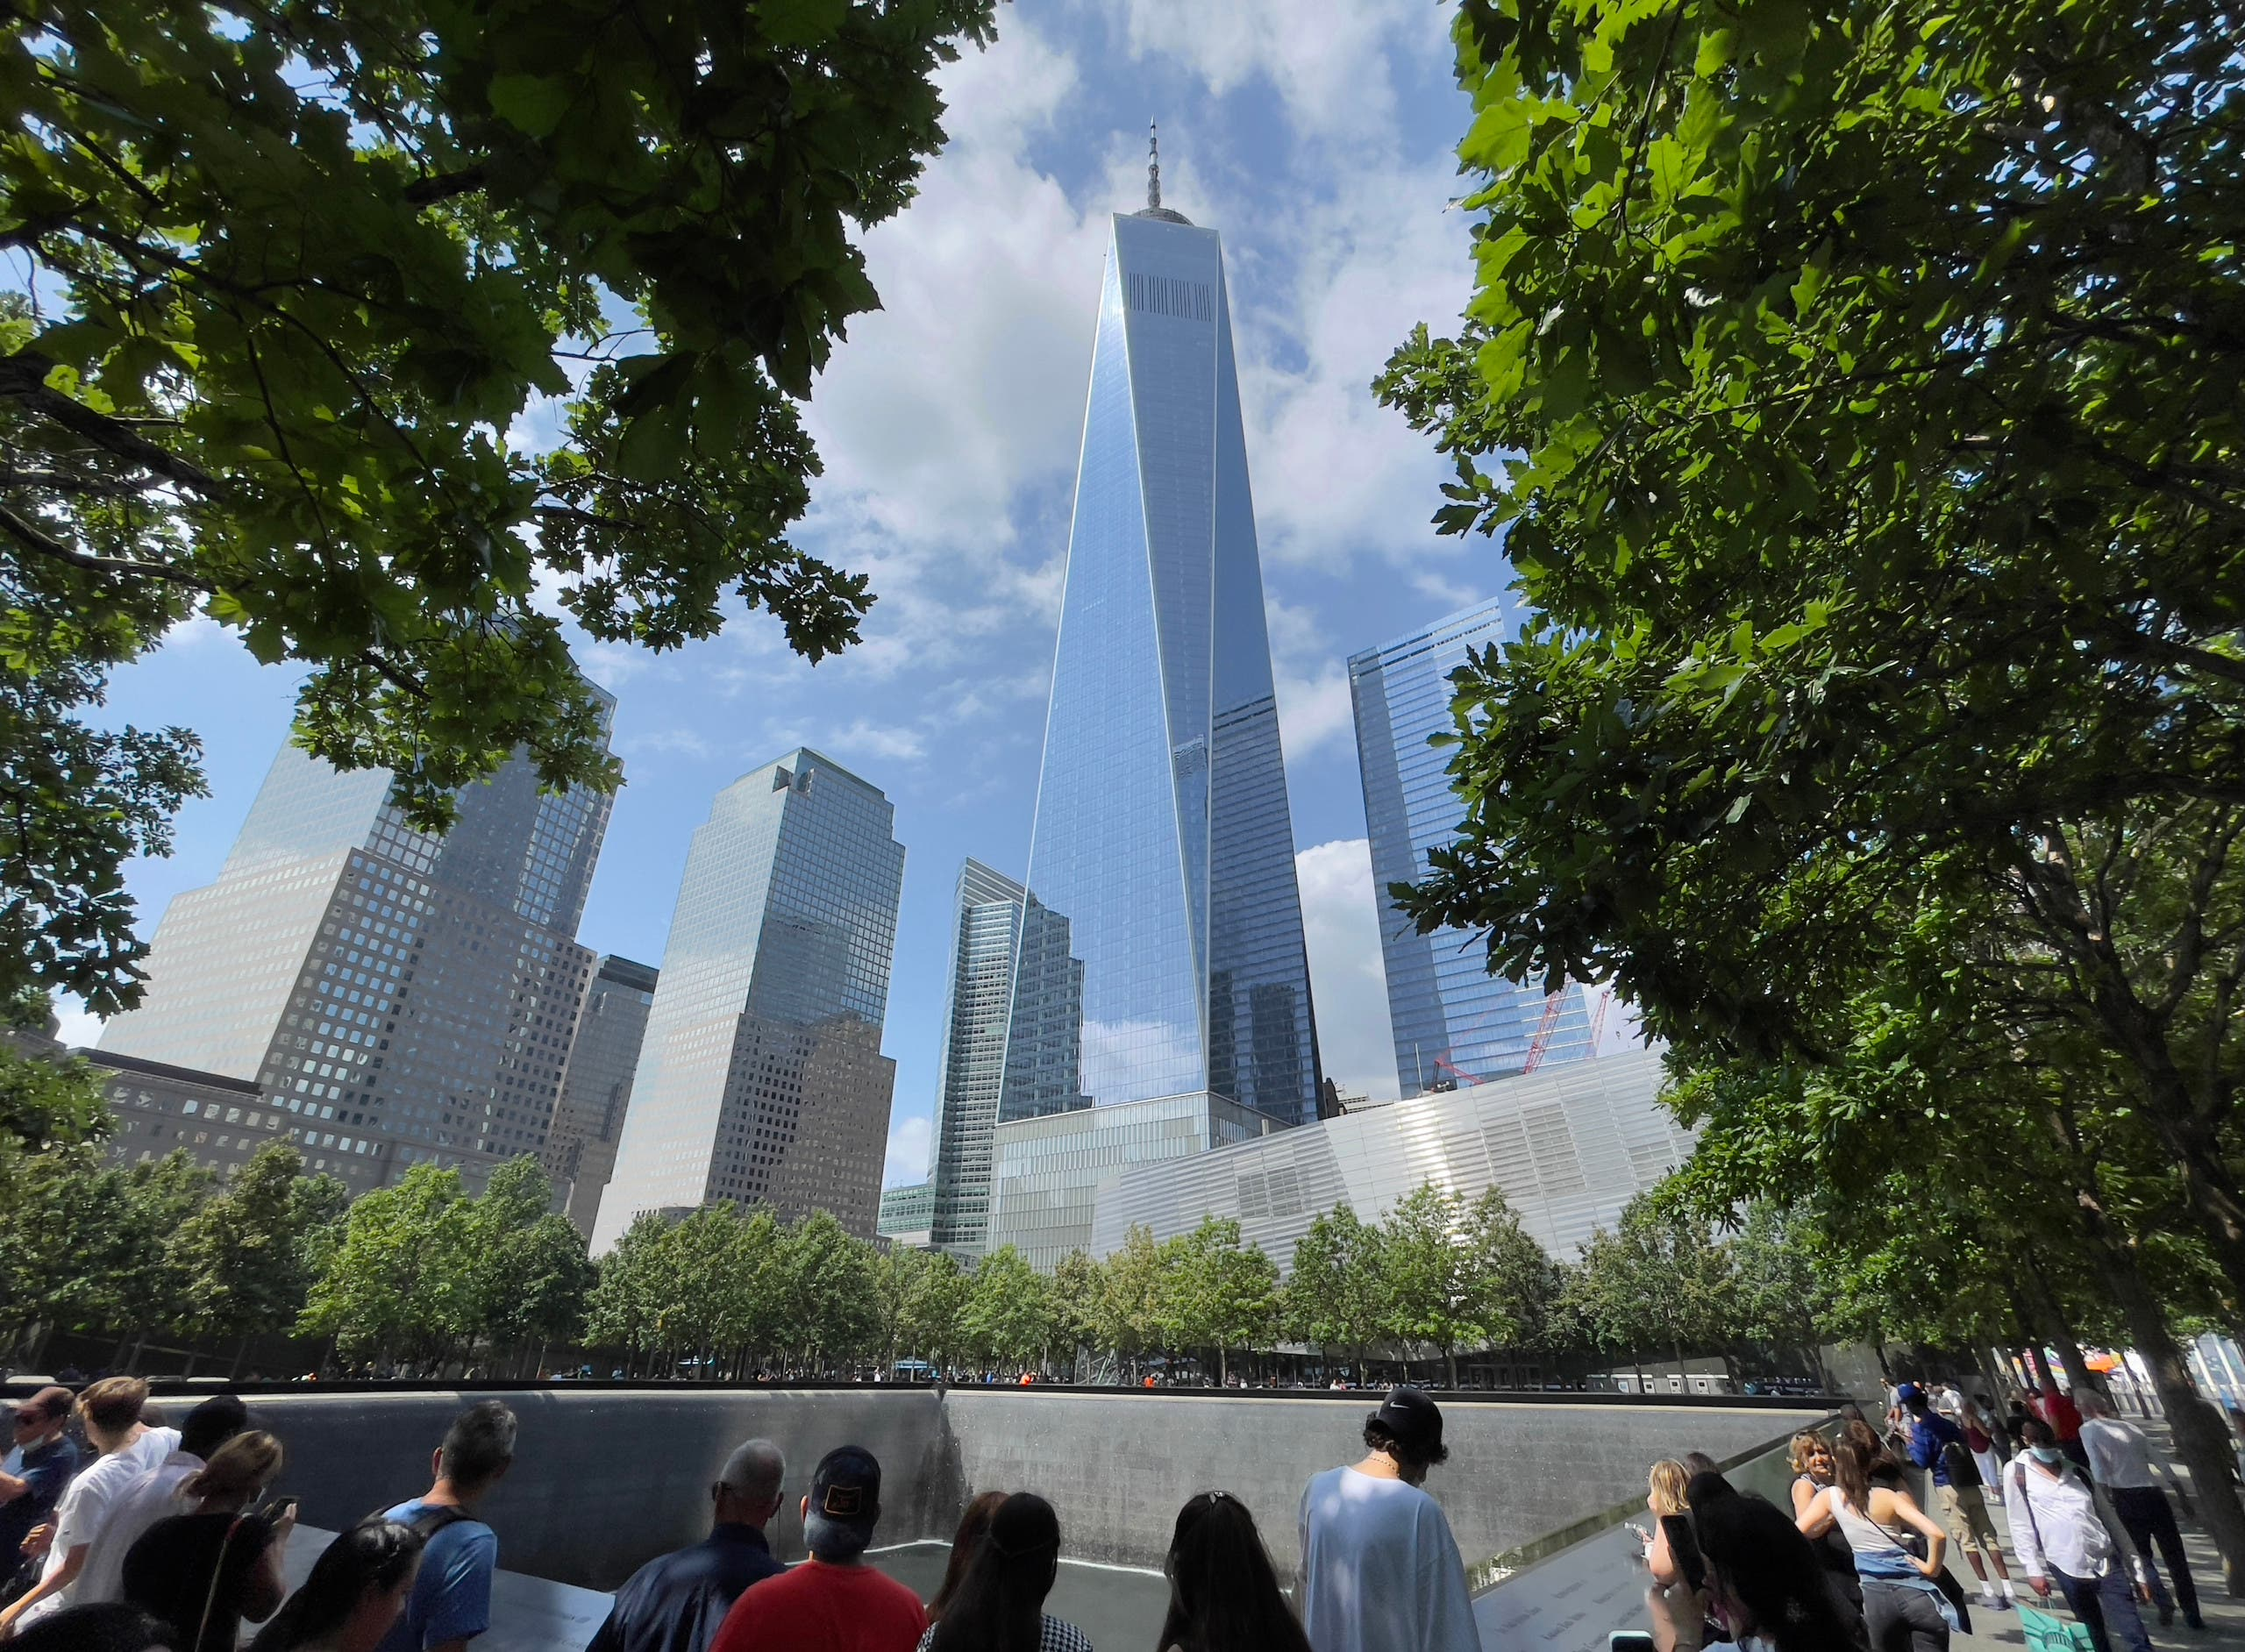 One World Trade Center building is seen as people visit the 9/11 memorial in New York on July 18, 2021. (AFP)